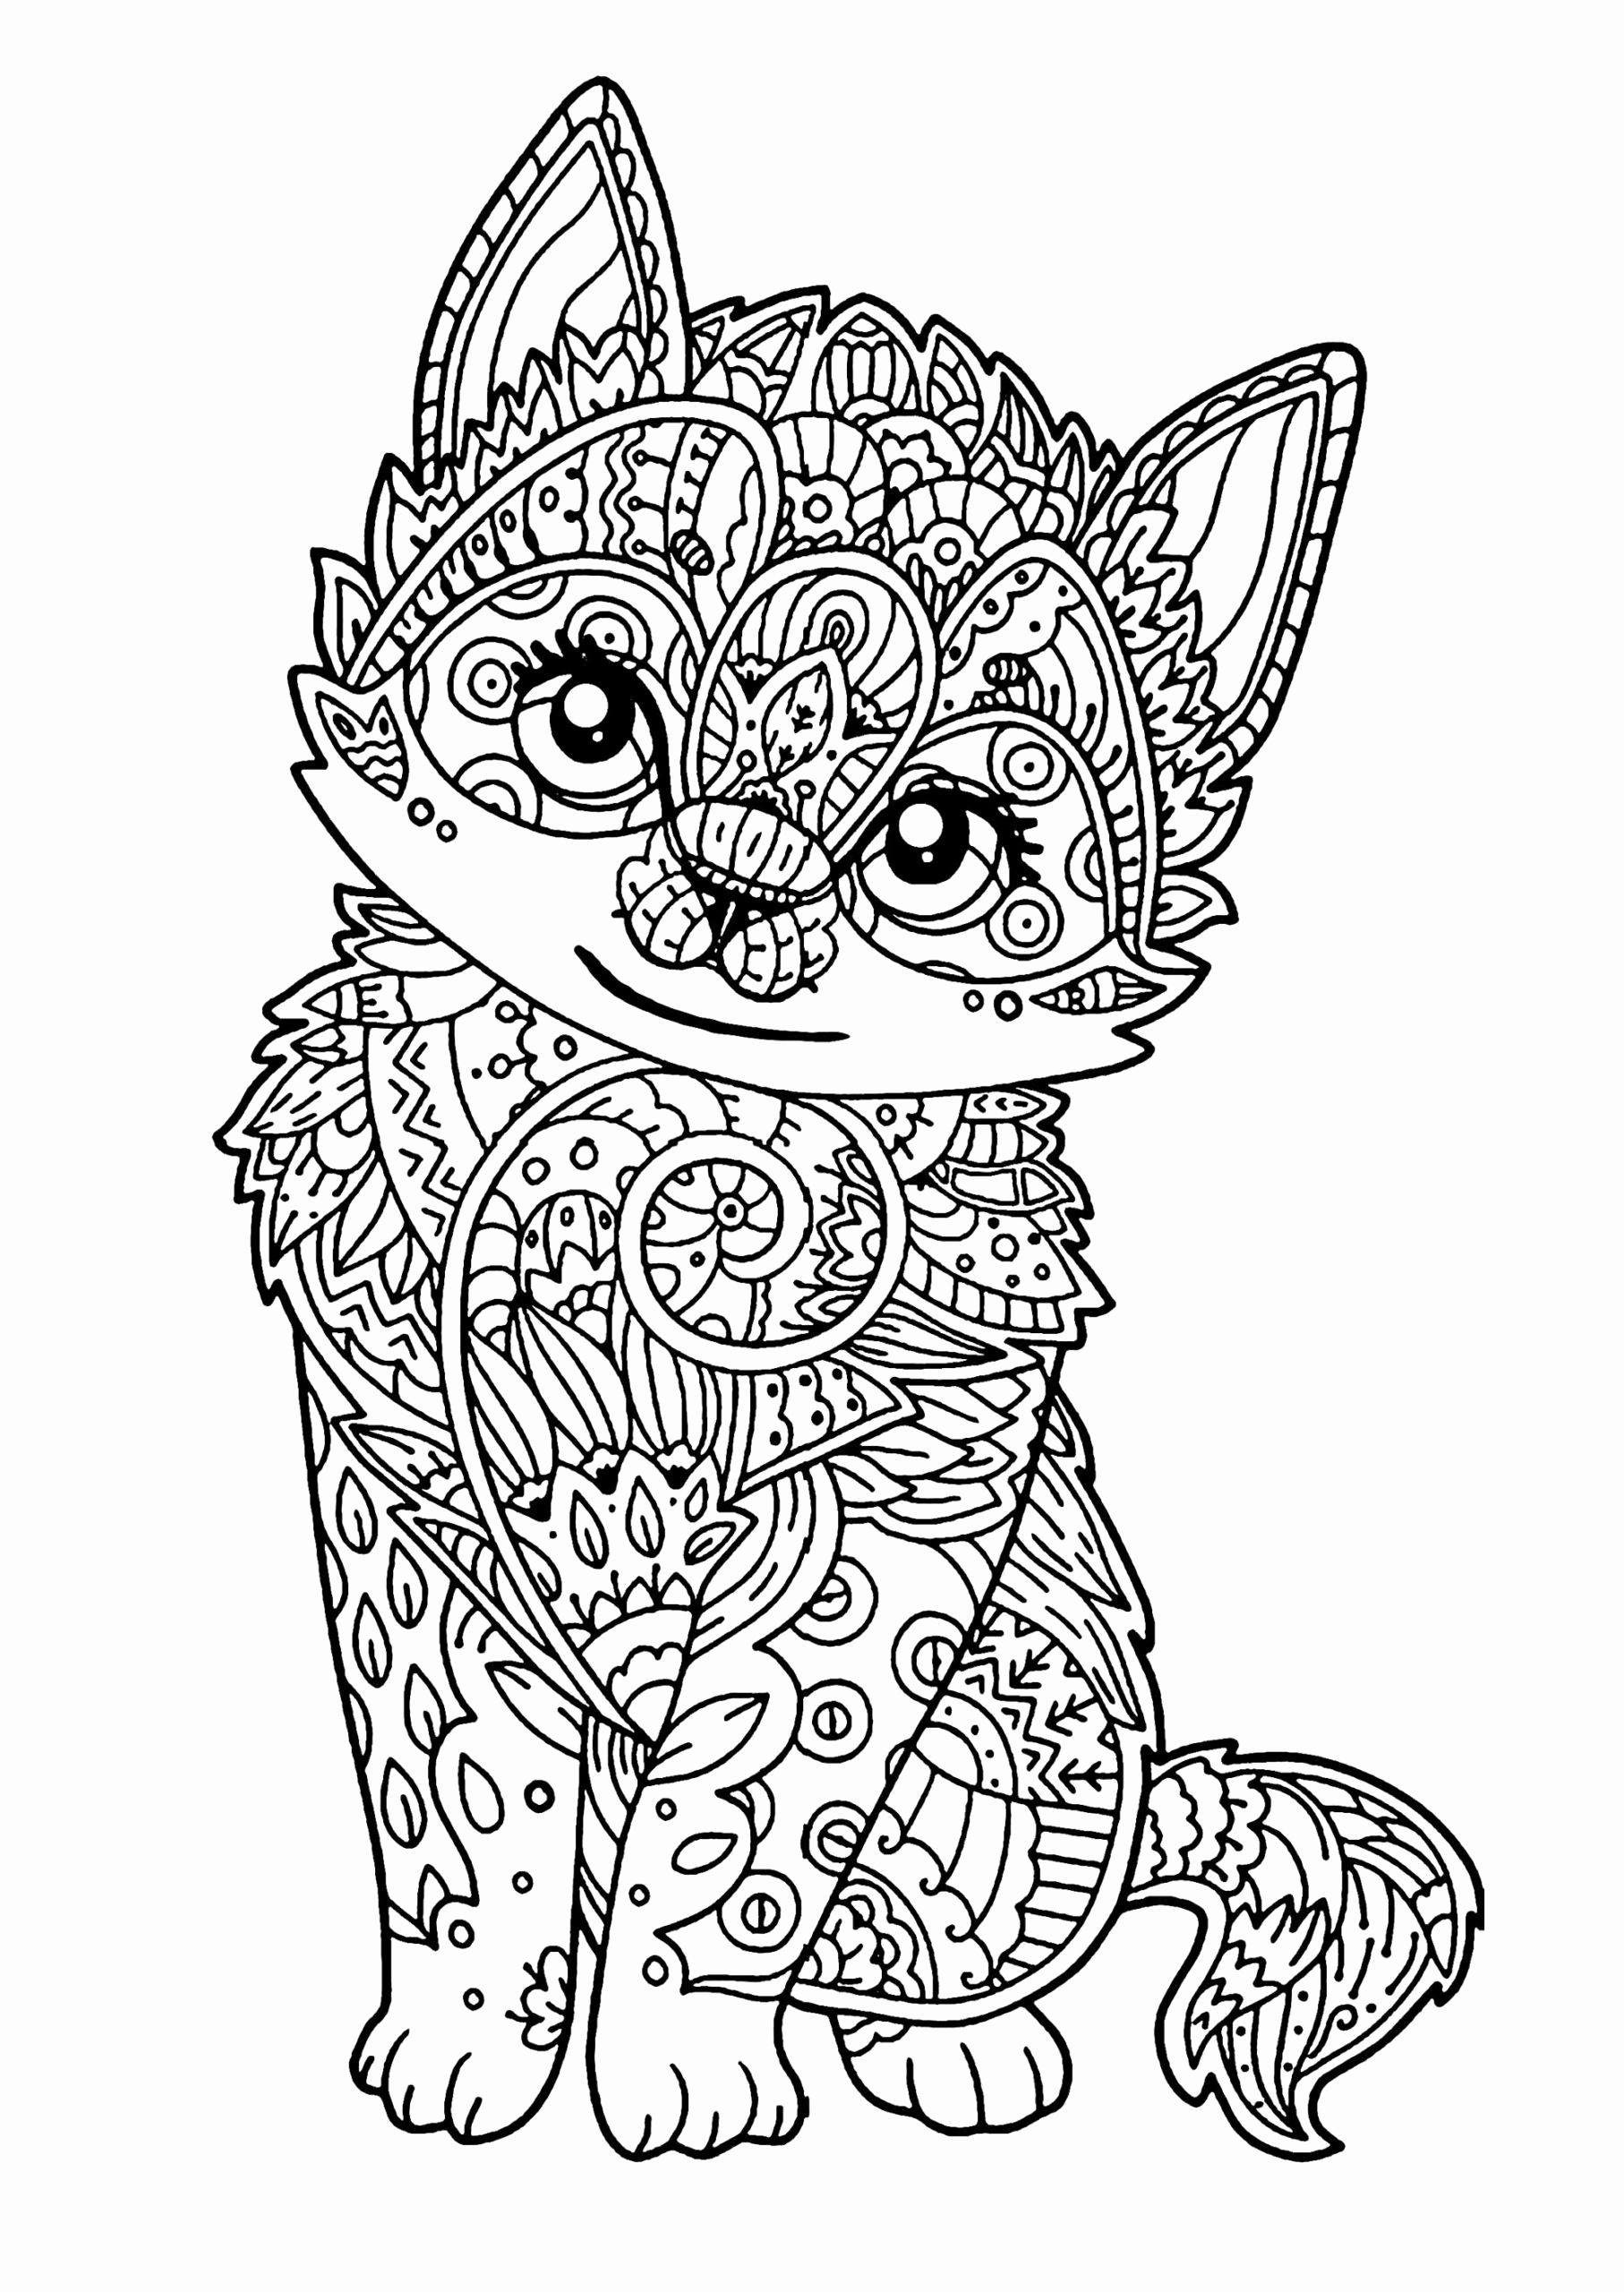 Free Printable Coloring Pages For Kids Cat Realistic Kitty Coloring Cat Coloring Page Animal Coloring Pages